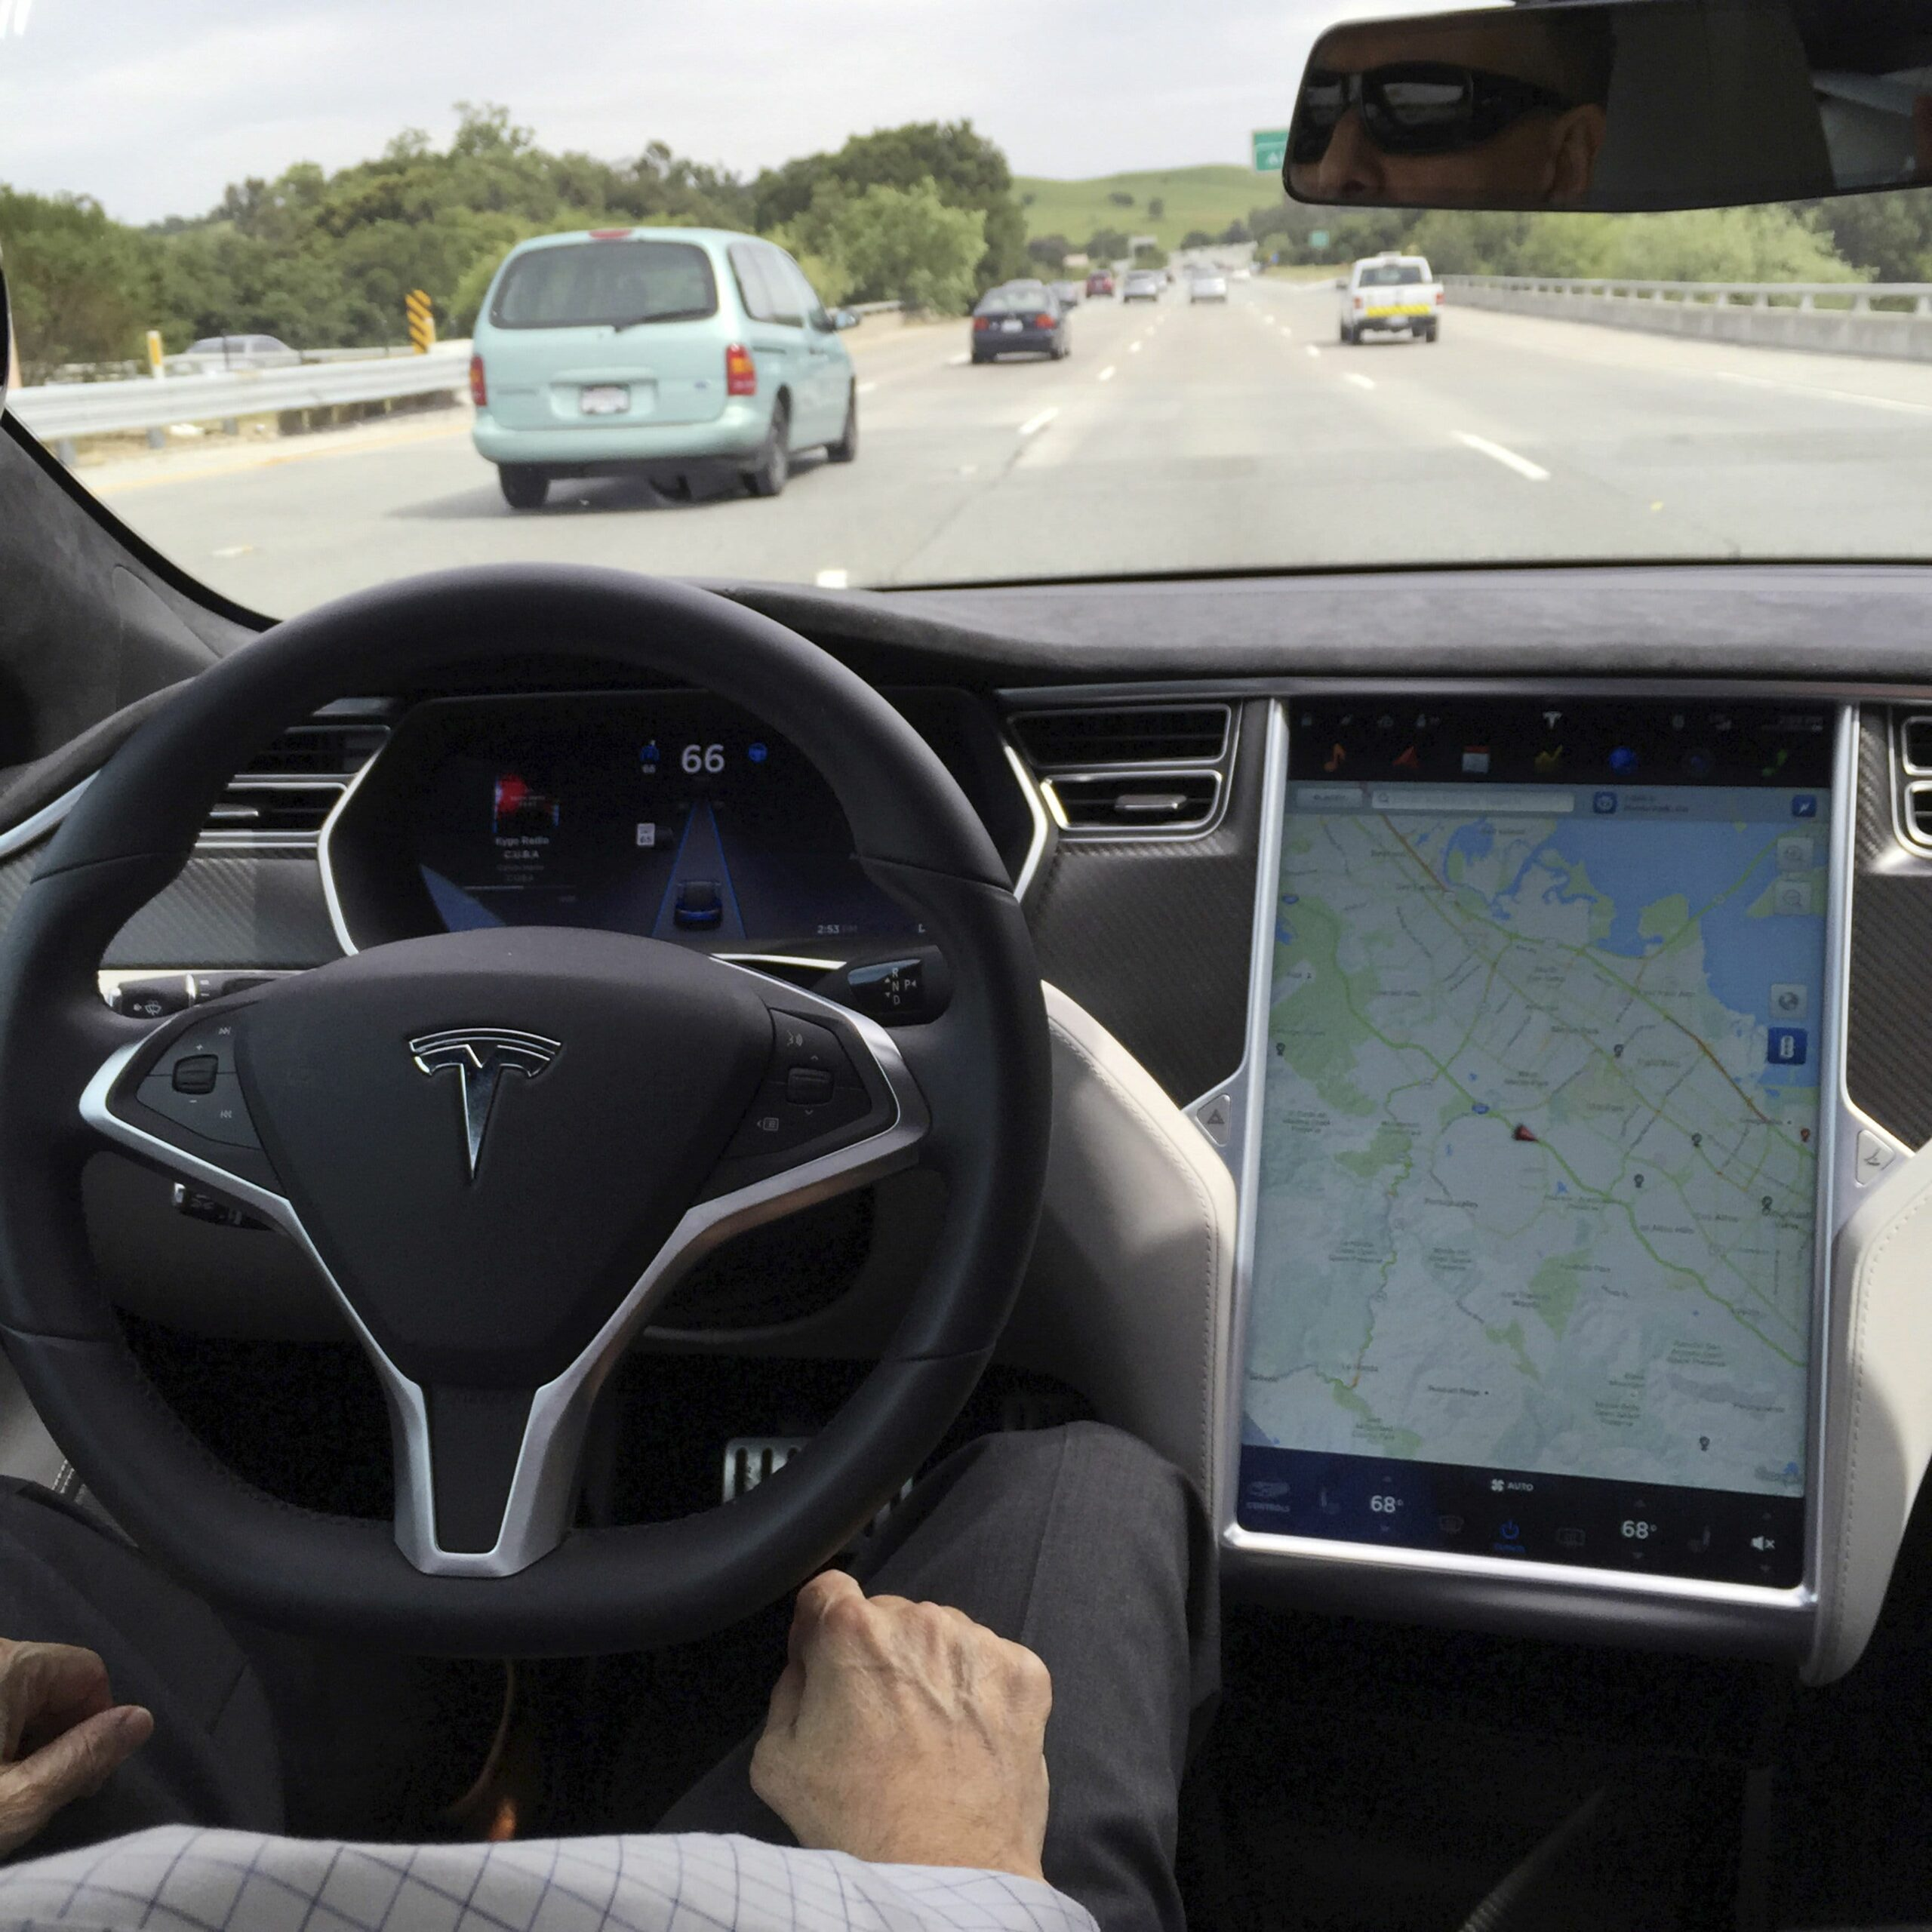 Tesla Autopilot to be compared with 12 other systems in NHTSA probe